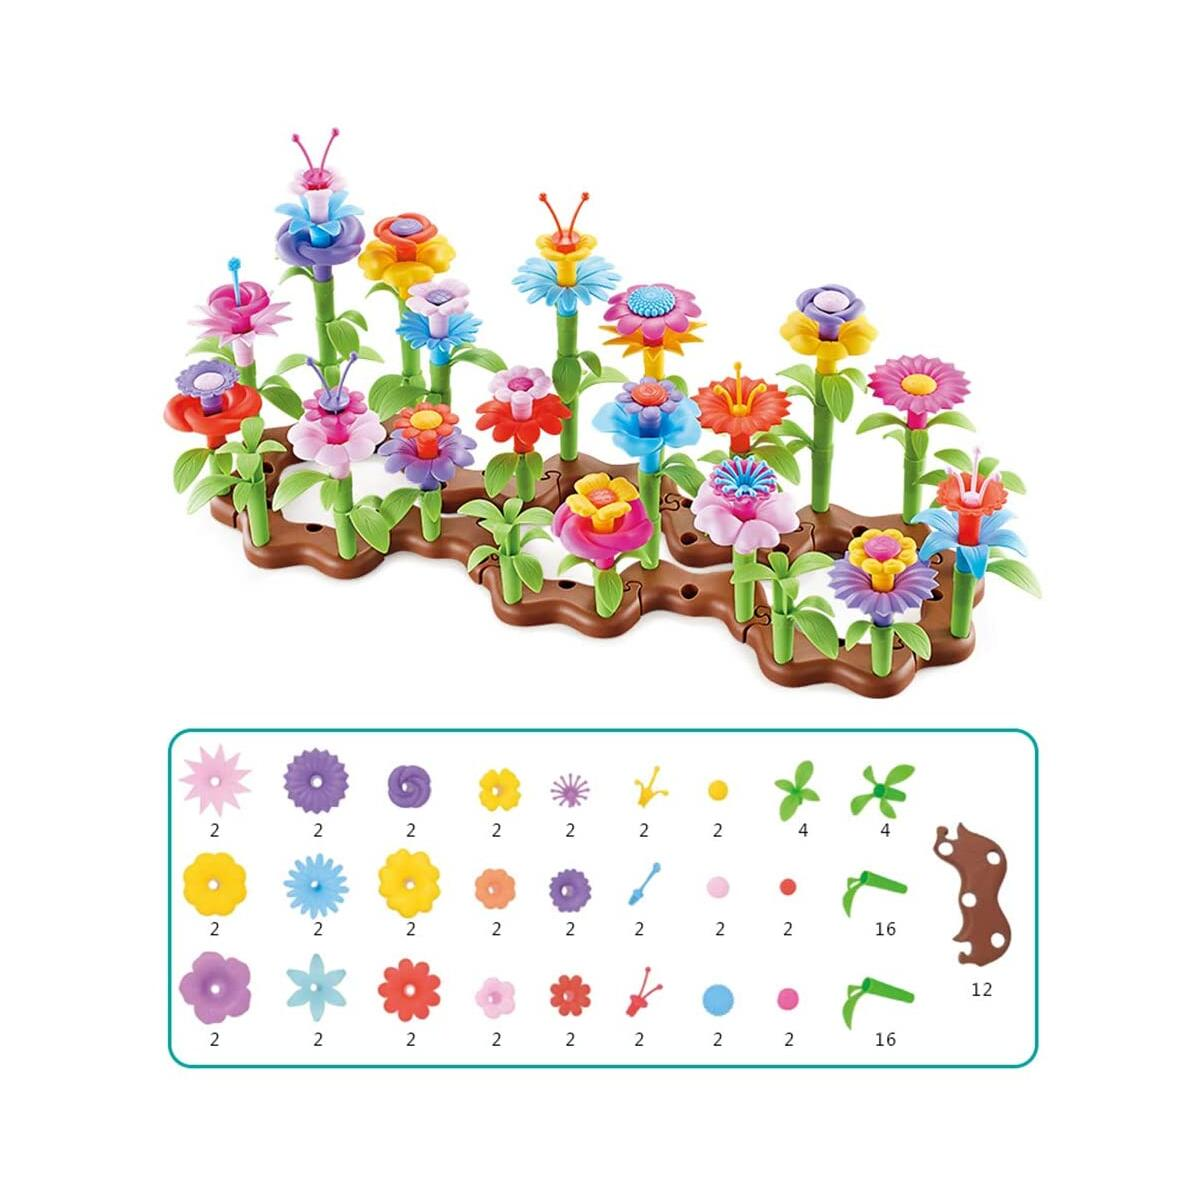 WISHTIME Flower Garden Building Toys 104pcs Girls Kids Toddles Gifts for 3 4 5 6 7 Year Old